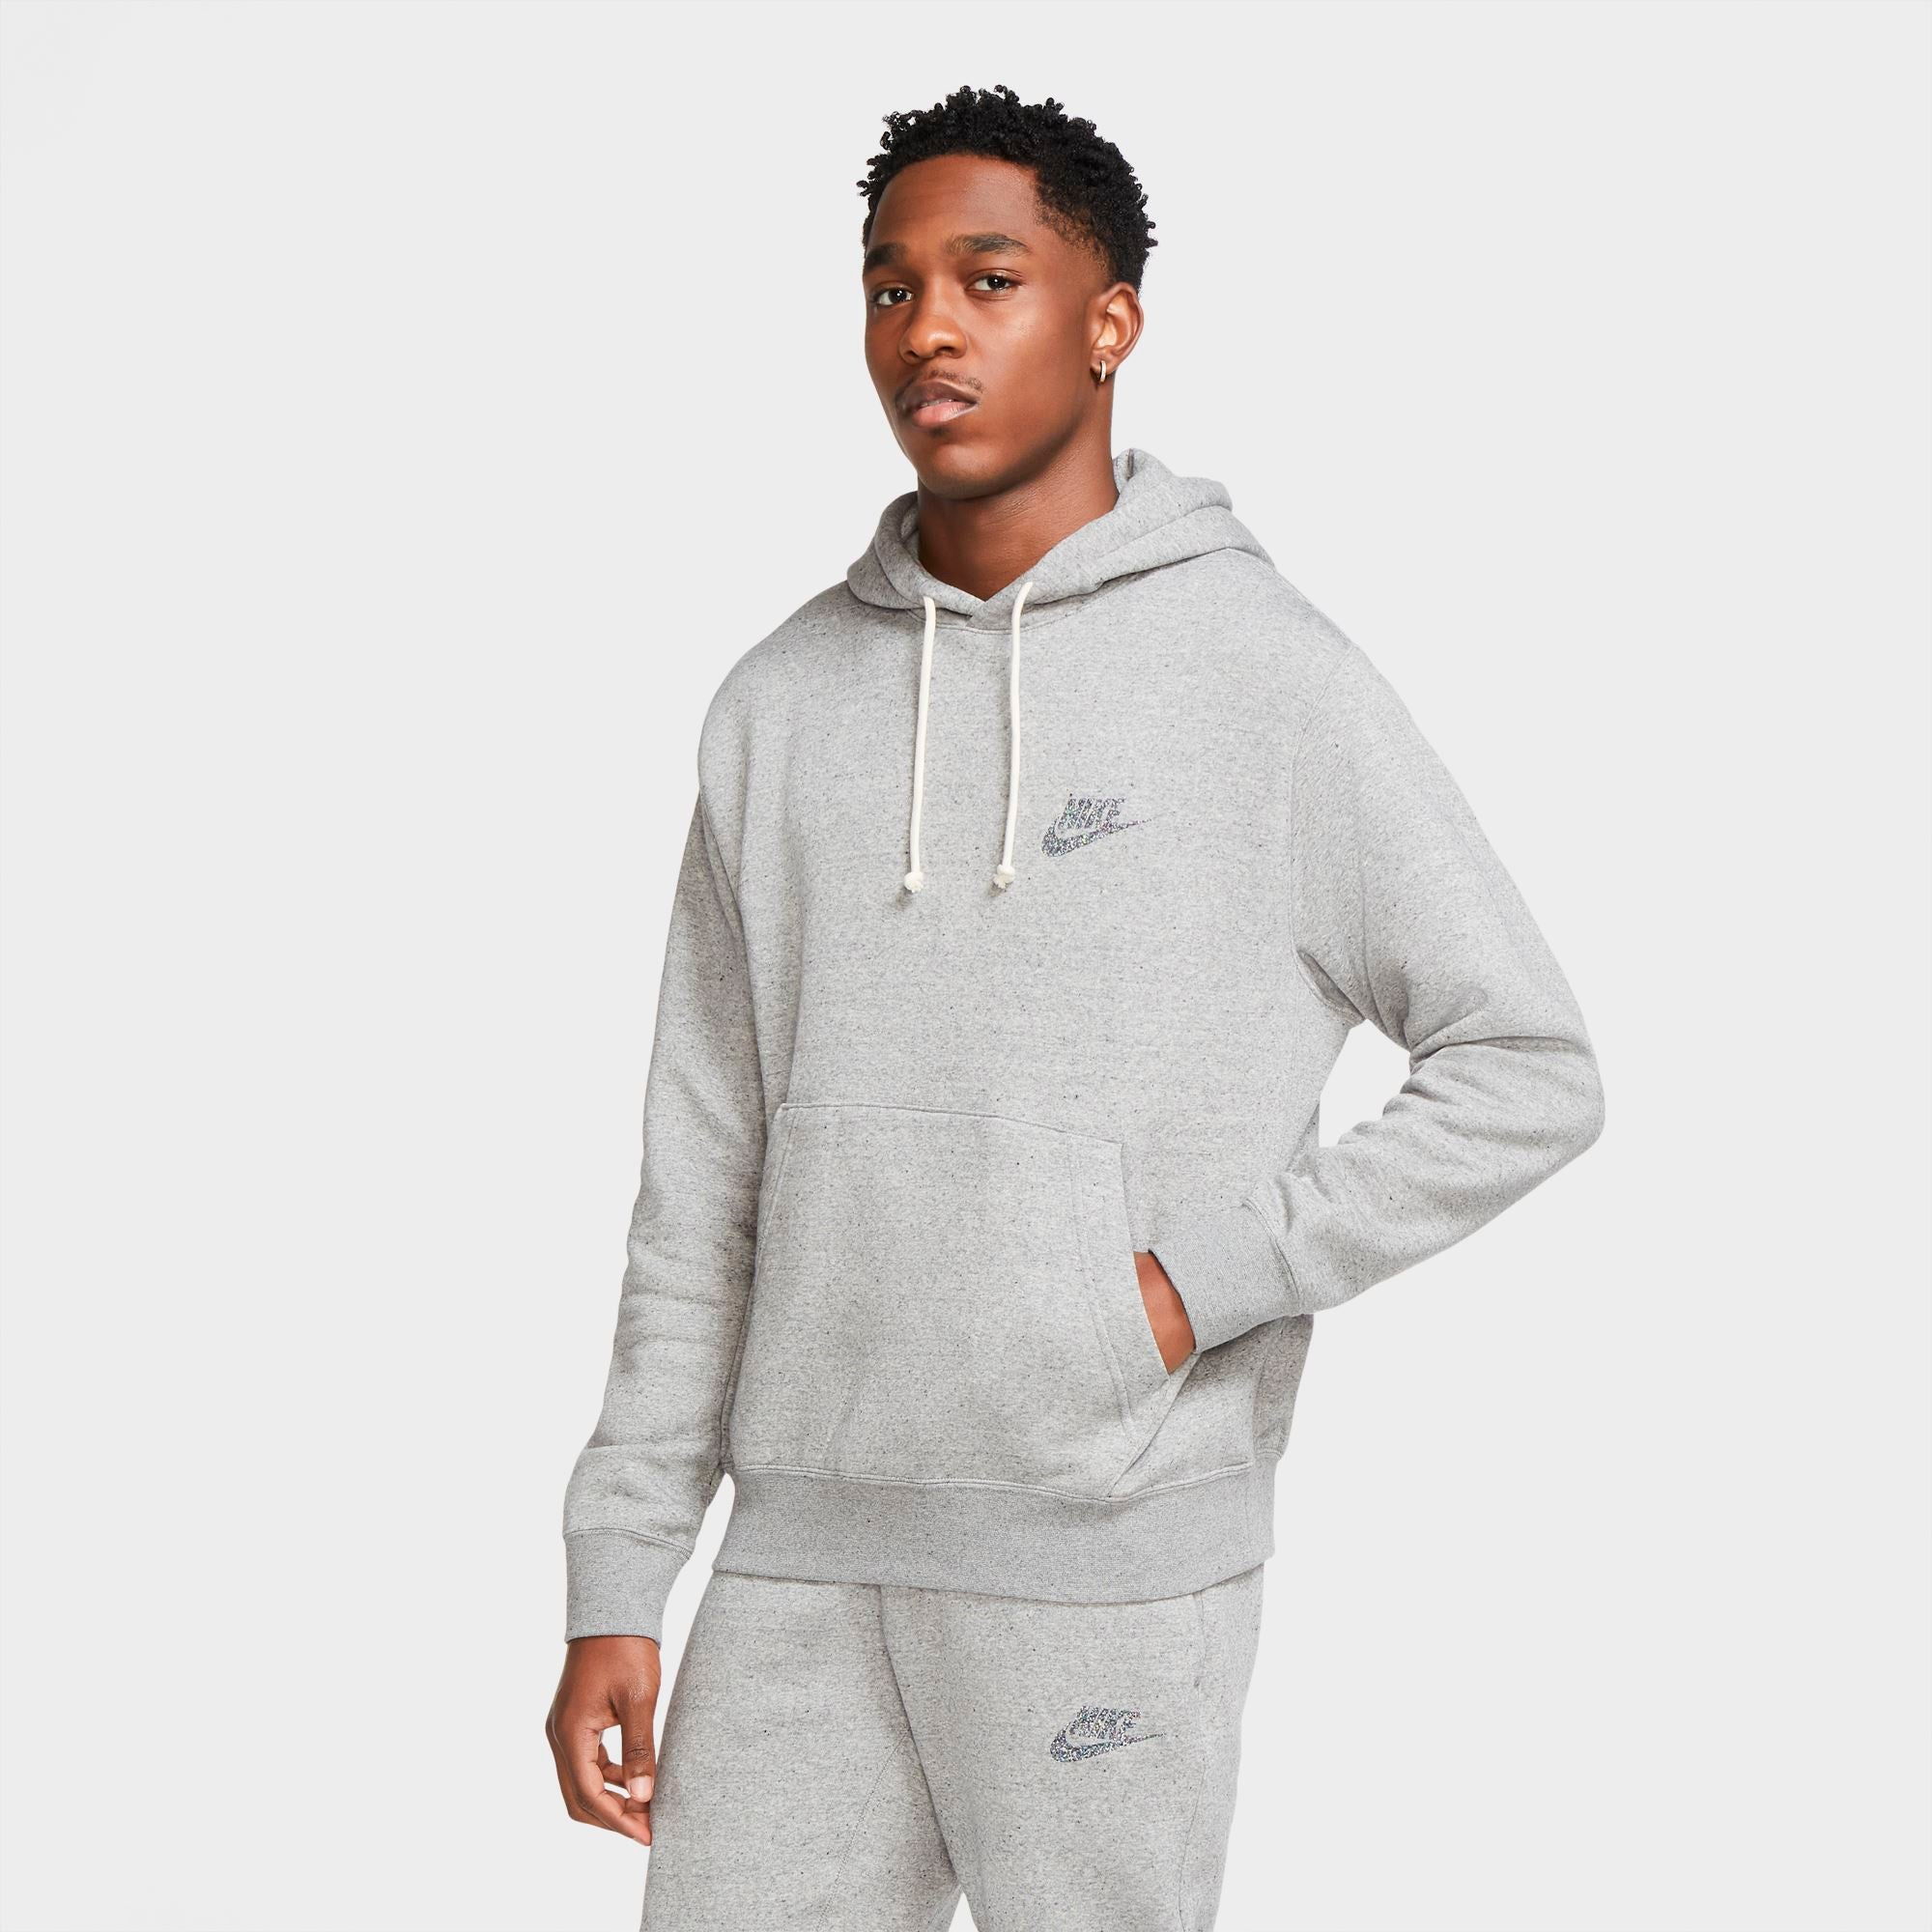 Nike Men's Sportswear Hoodie PO SB - Grey/Multicolour/Black/Multicolour SP-ApparelFleece-Mens Nike